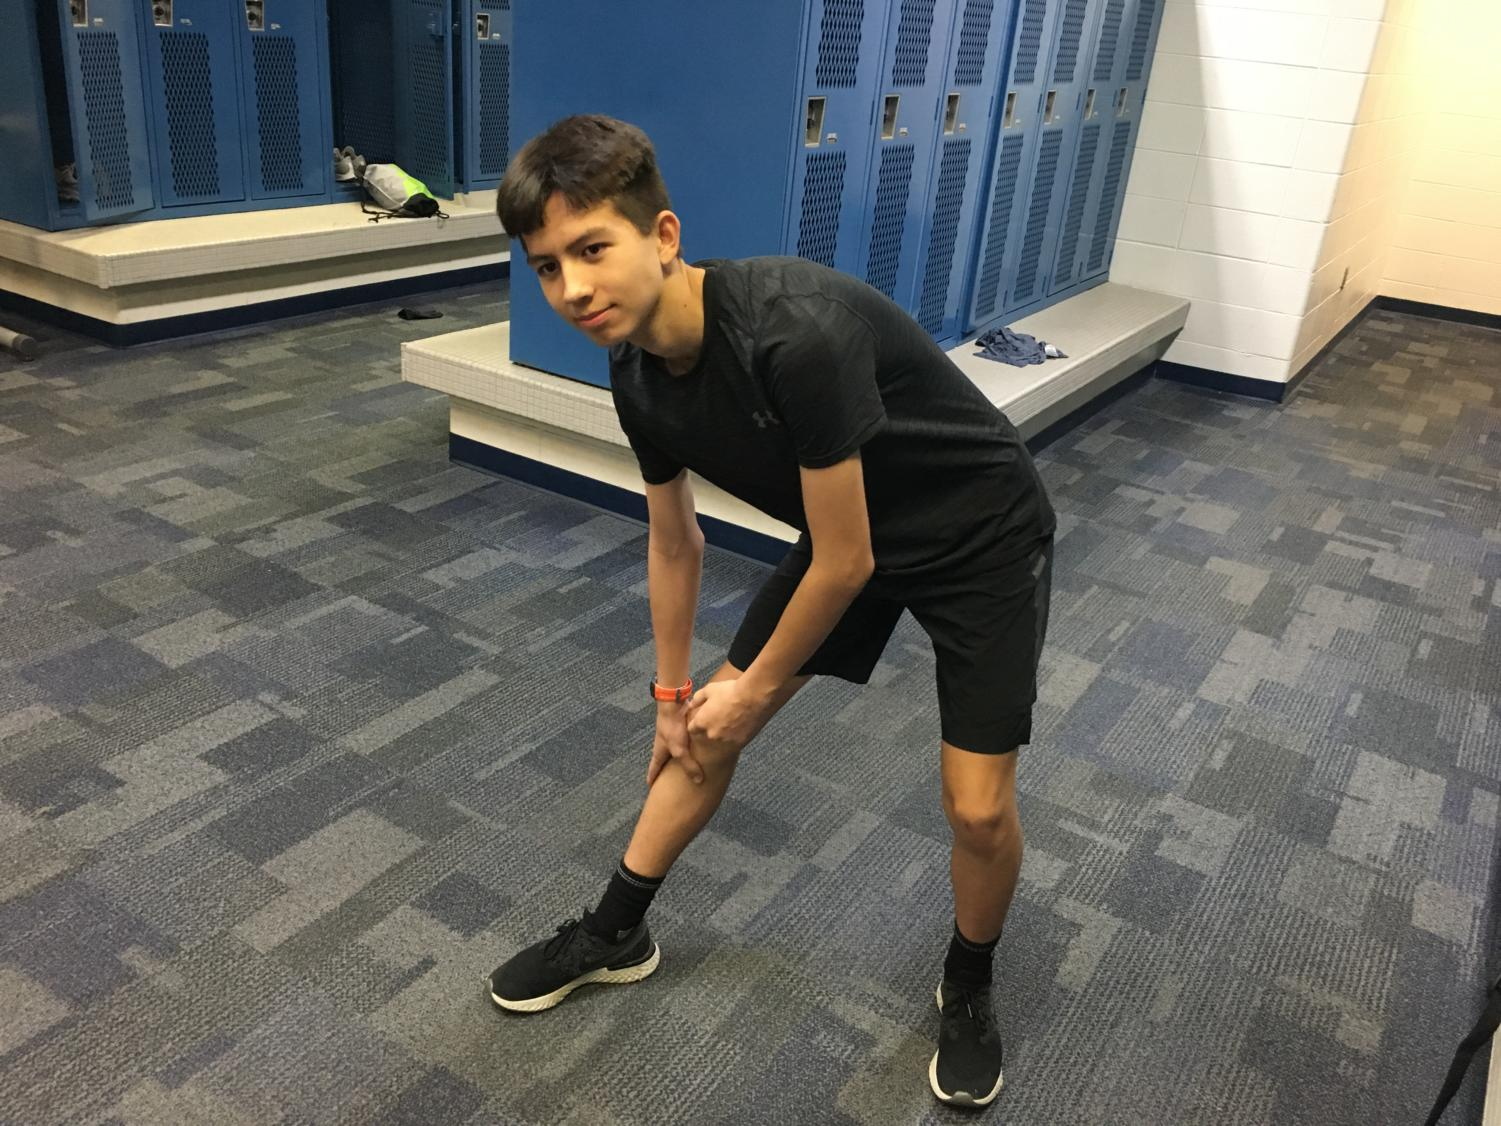 Connor Heagy, track runner and freshman, stretches after practice. The tournament roster will continue to train for Regionals on Thursday.